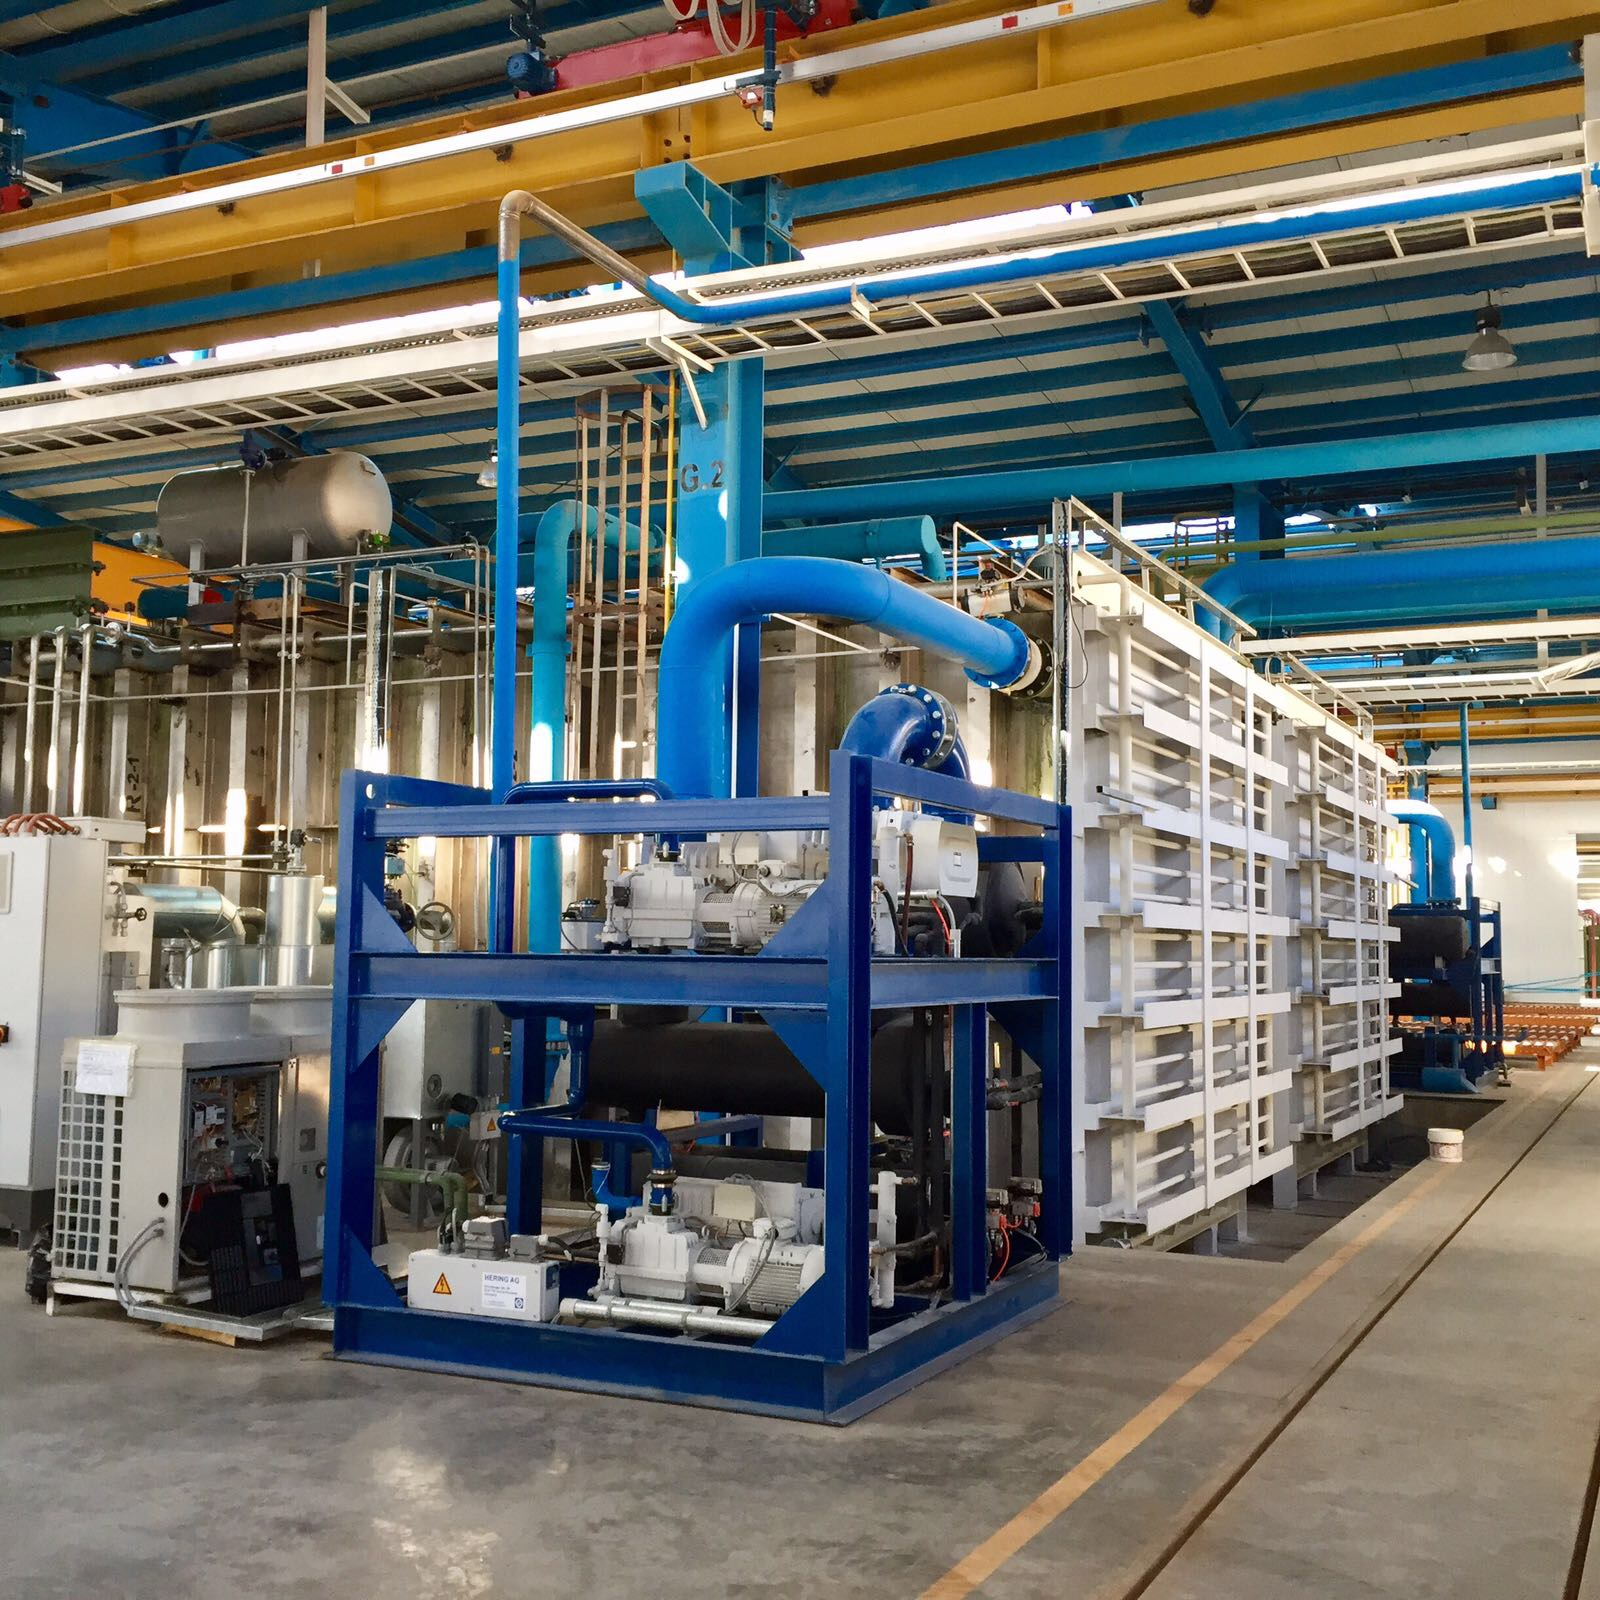 Hering transformer vacuum drying oven pumping station 1